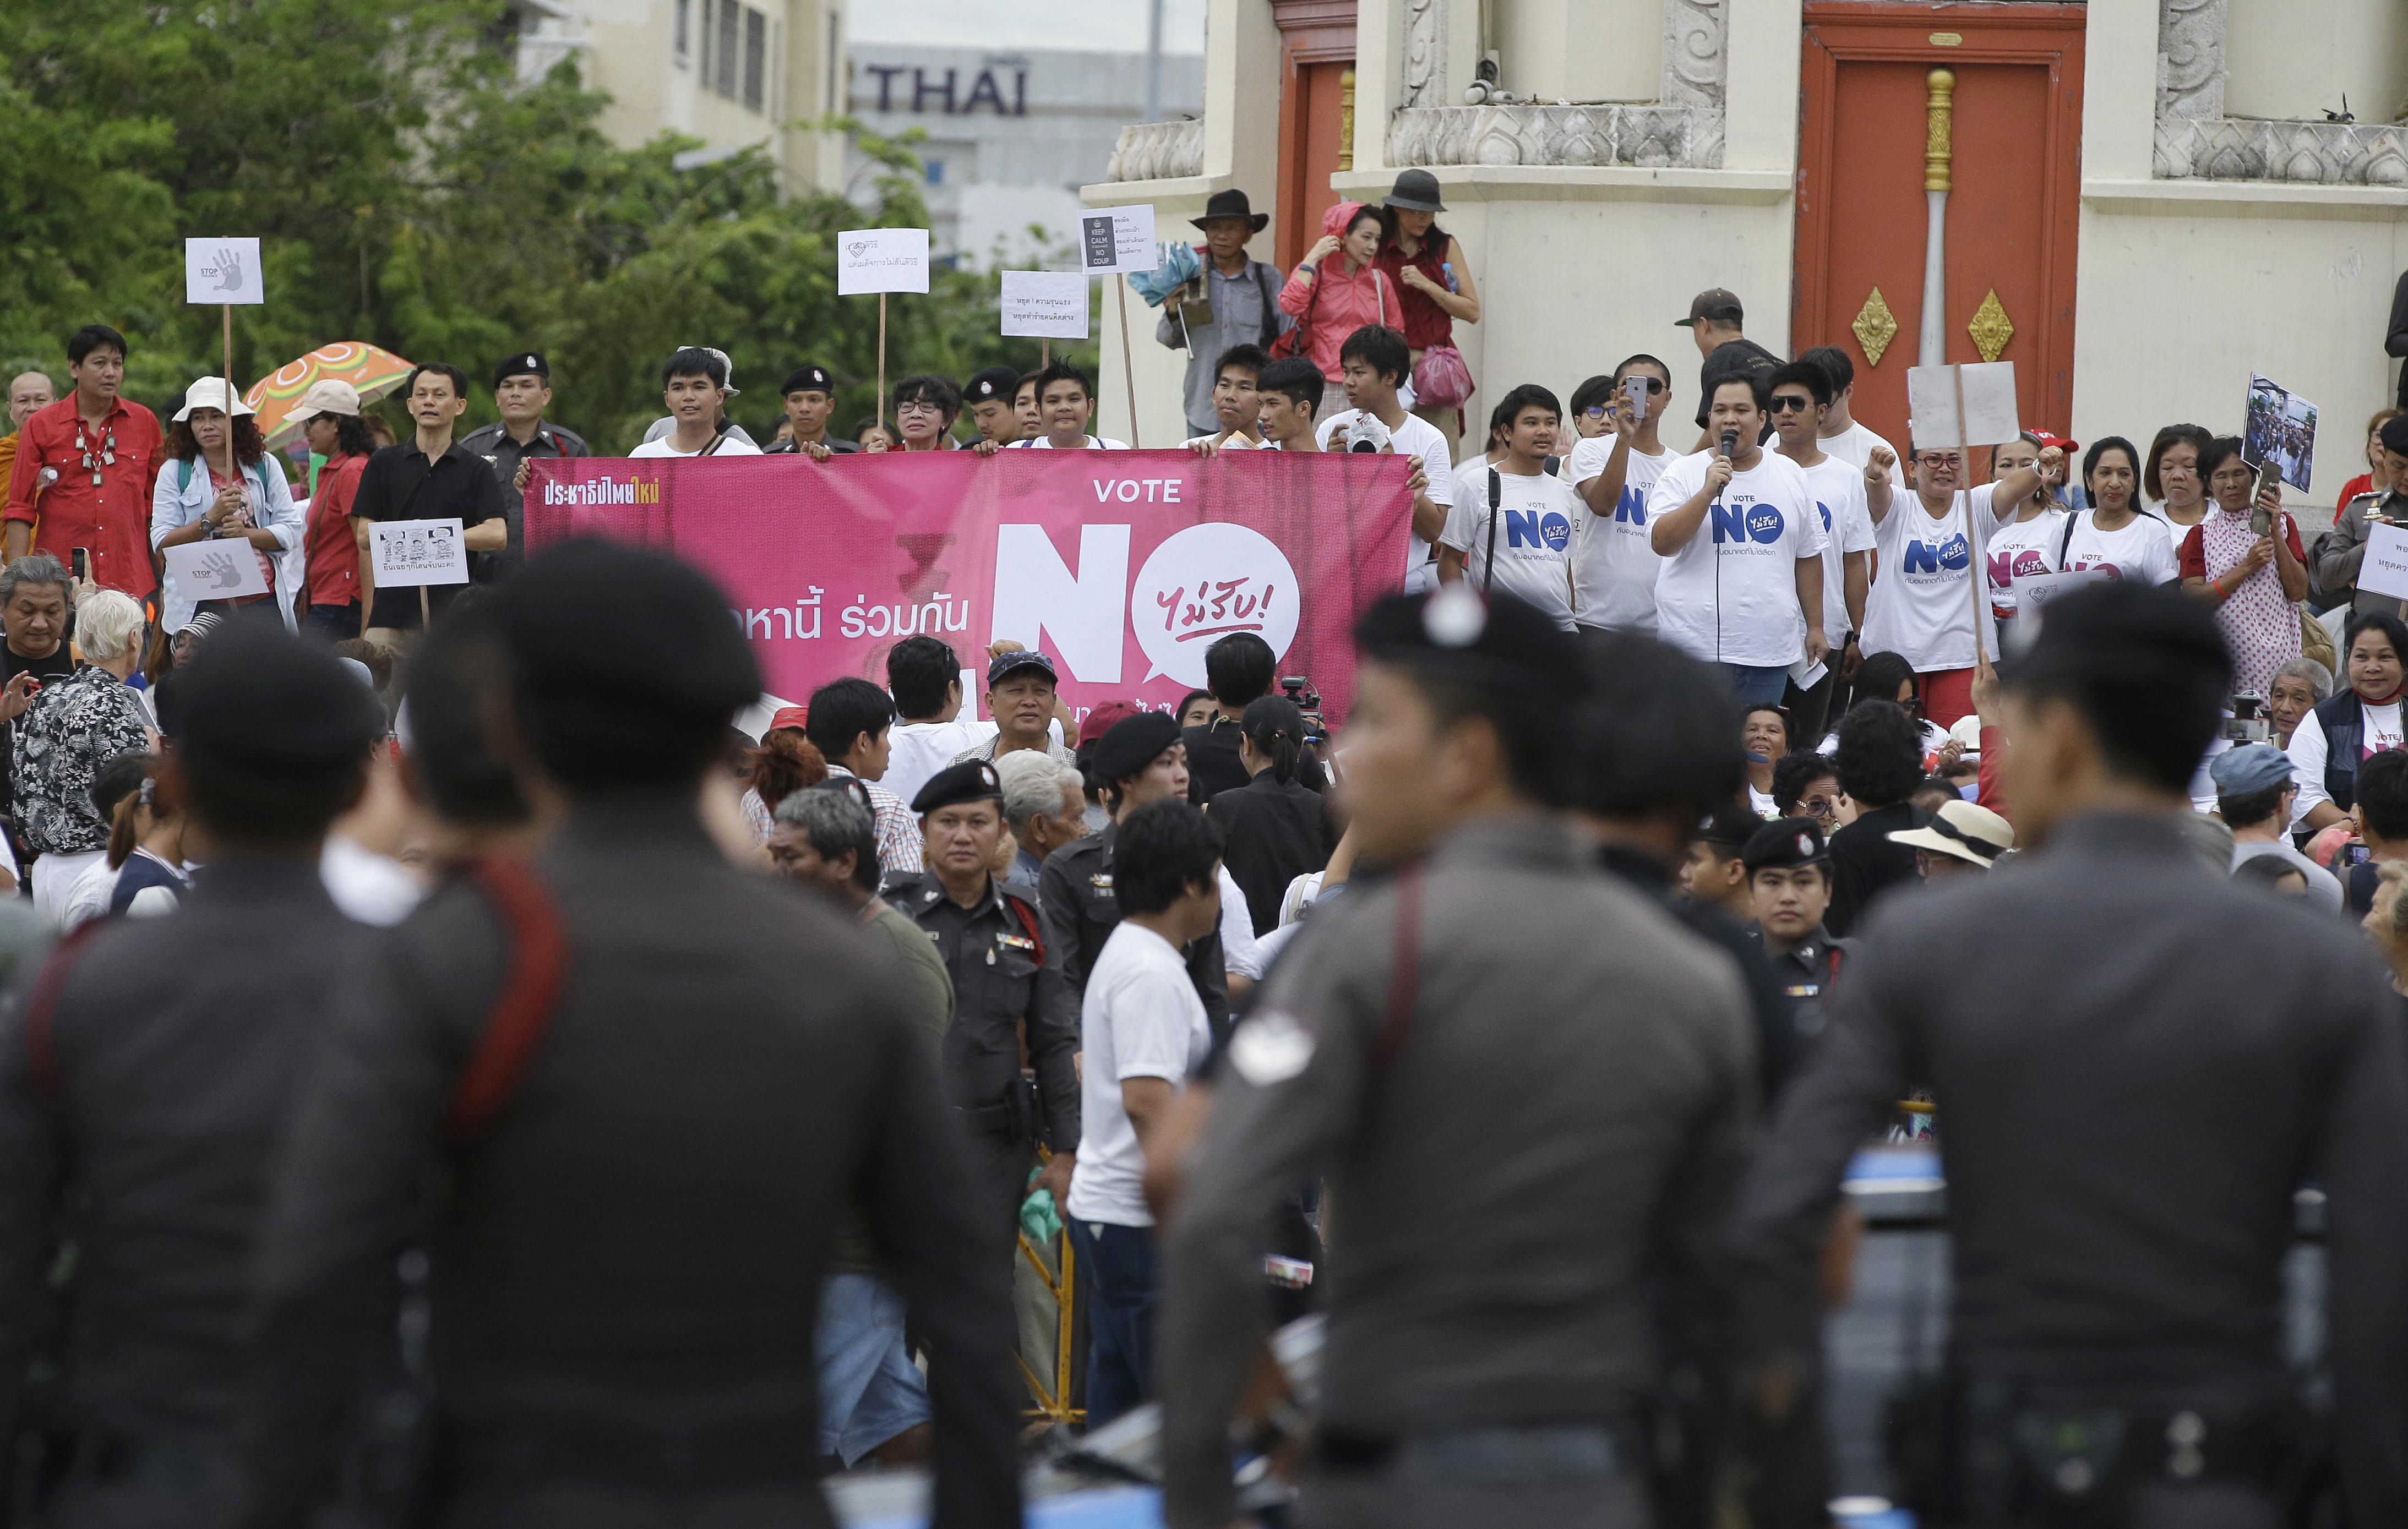 FILE - Police stand watch as anti-coup demonstrators rally to mark the second anniversary of the military takeover of government, in Bangkok, Thailand, May 22, 2016.